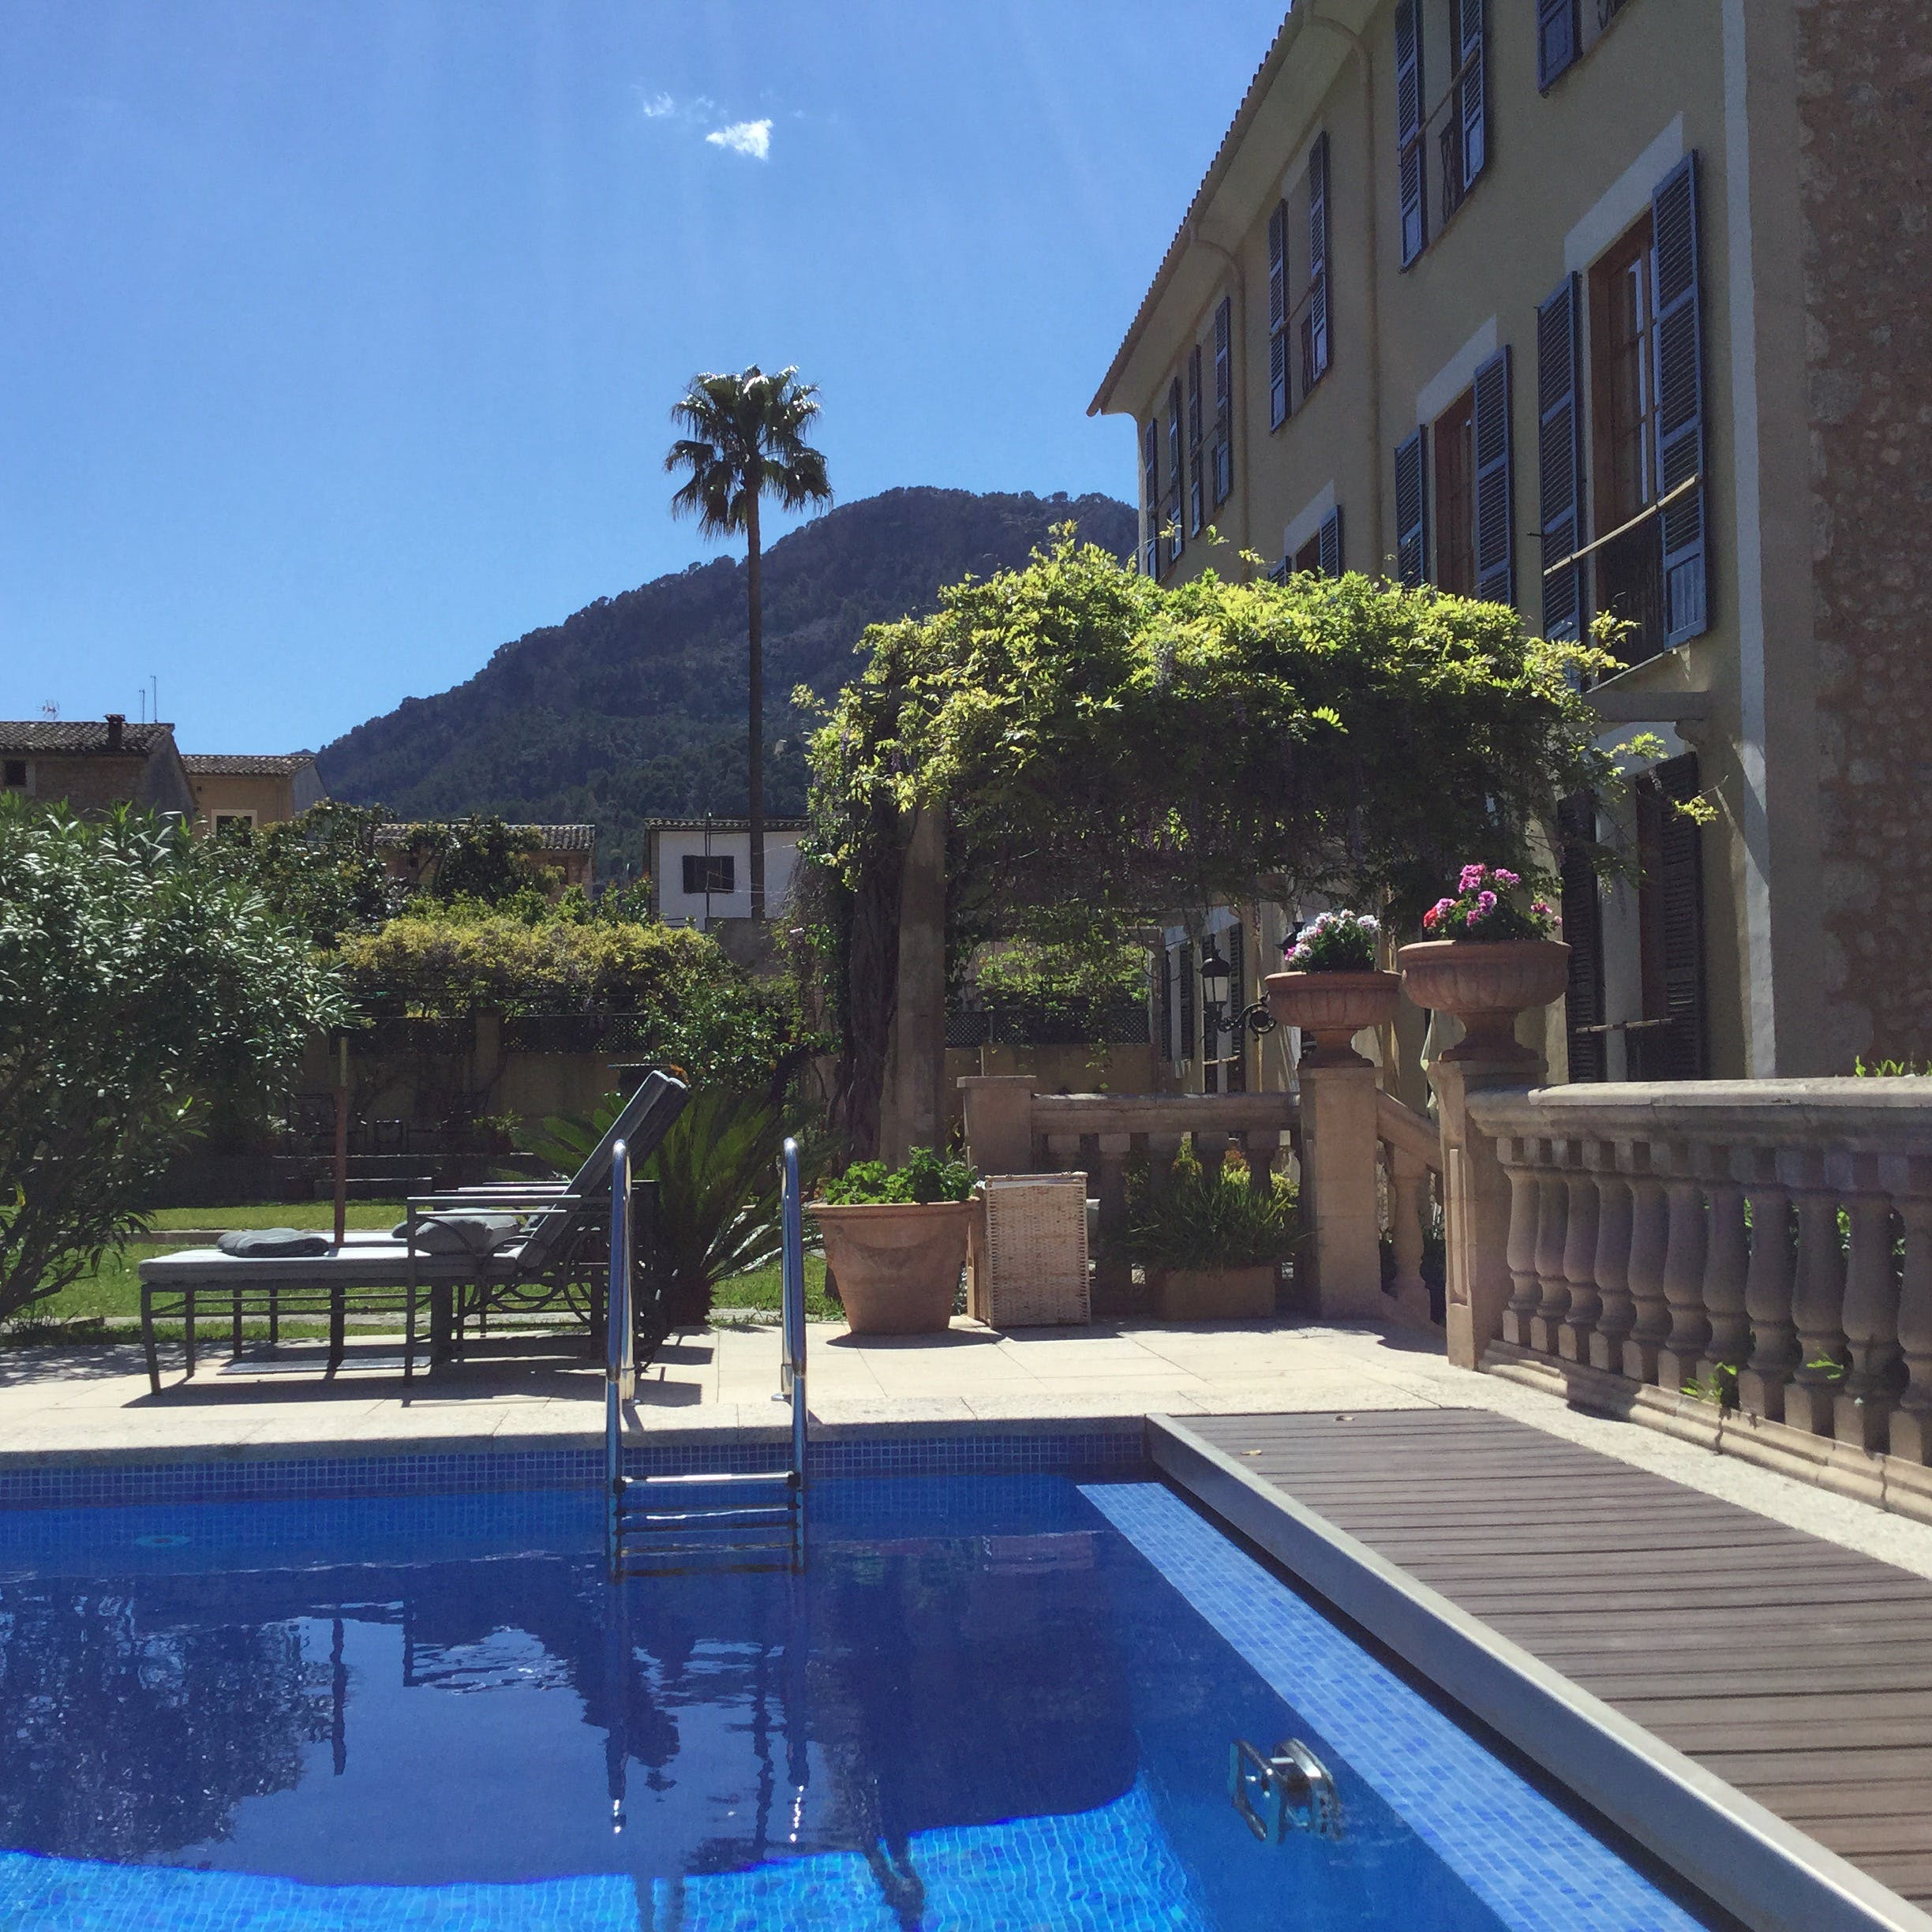 Clear blue skies and mountains viewed from the Salvia Pool